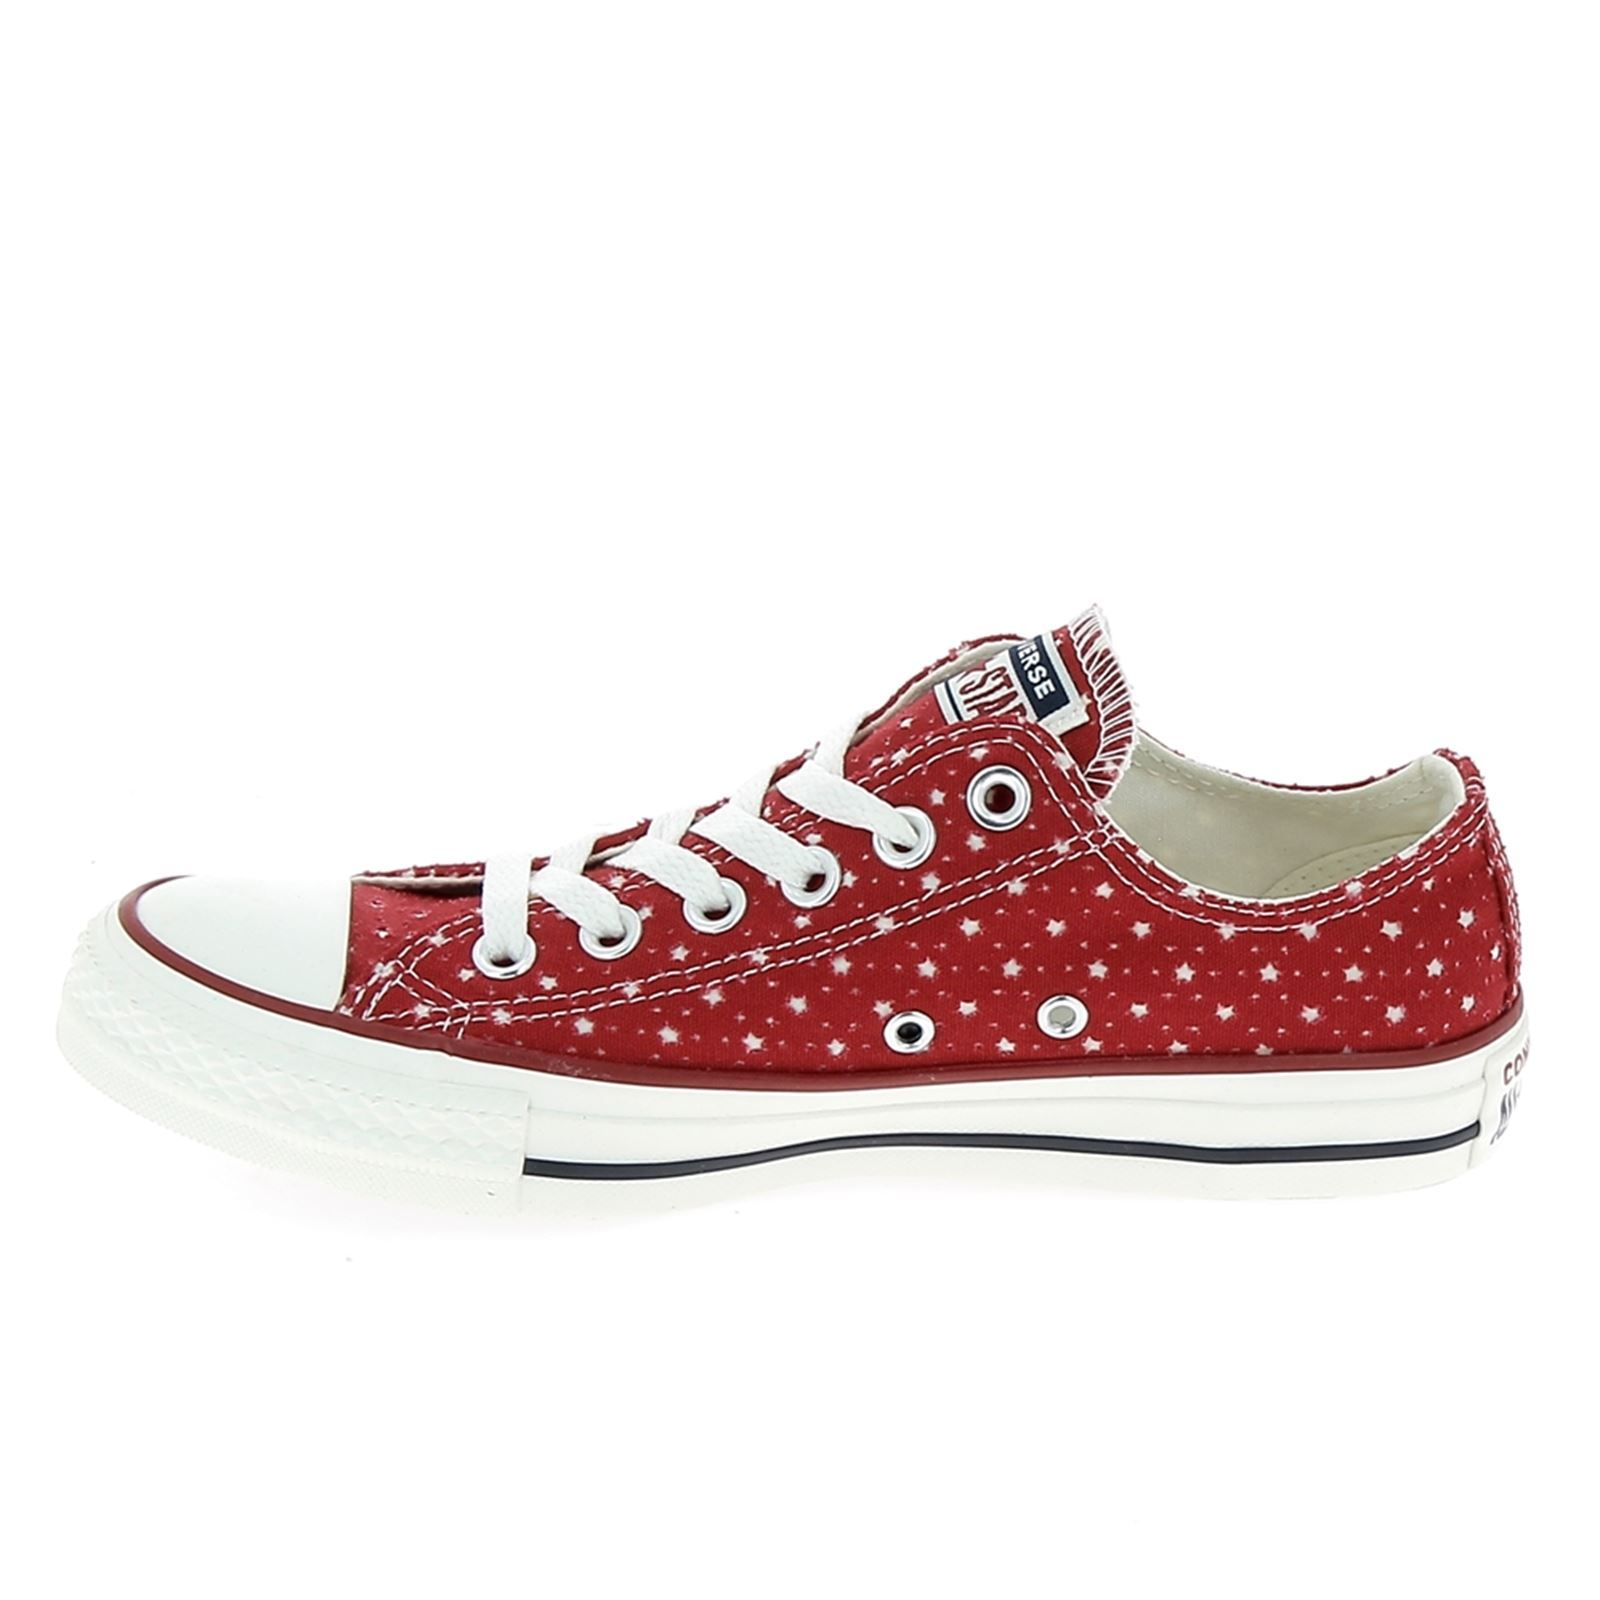 a7fb9df856fa0 Converse All star new - Baskets basses - rouge